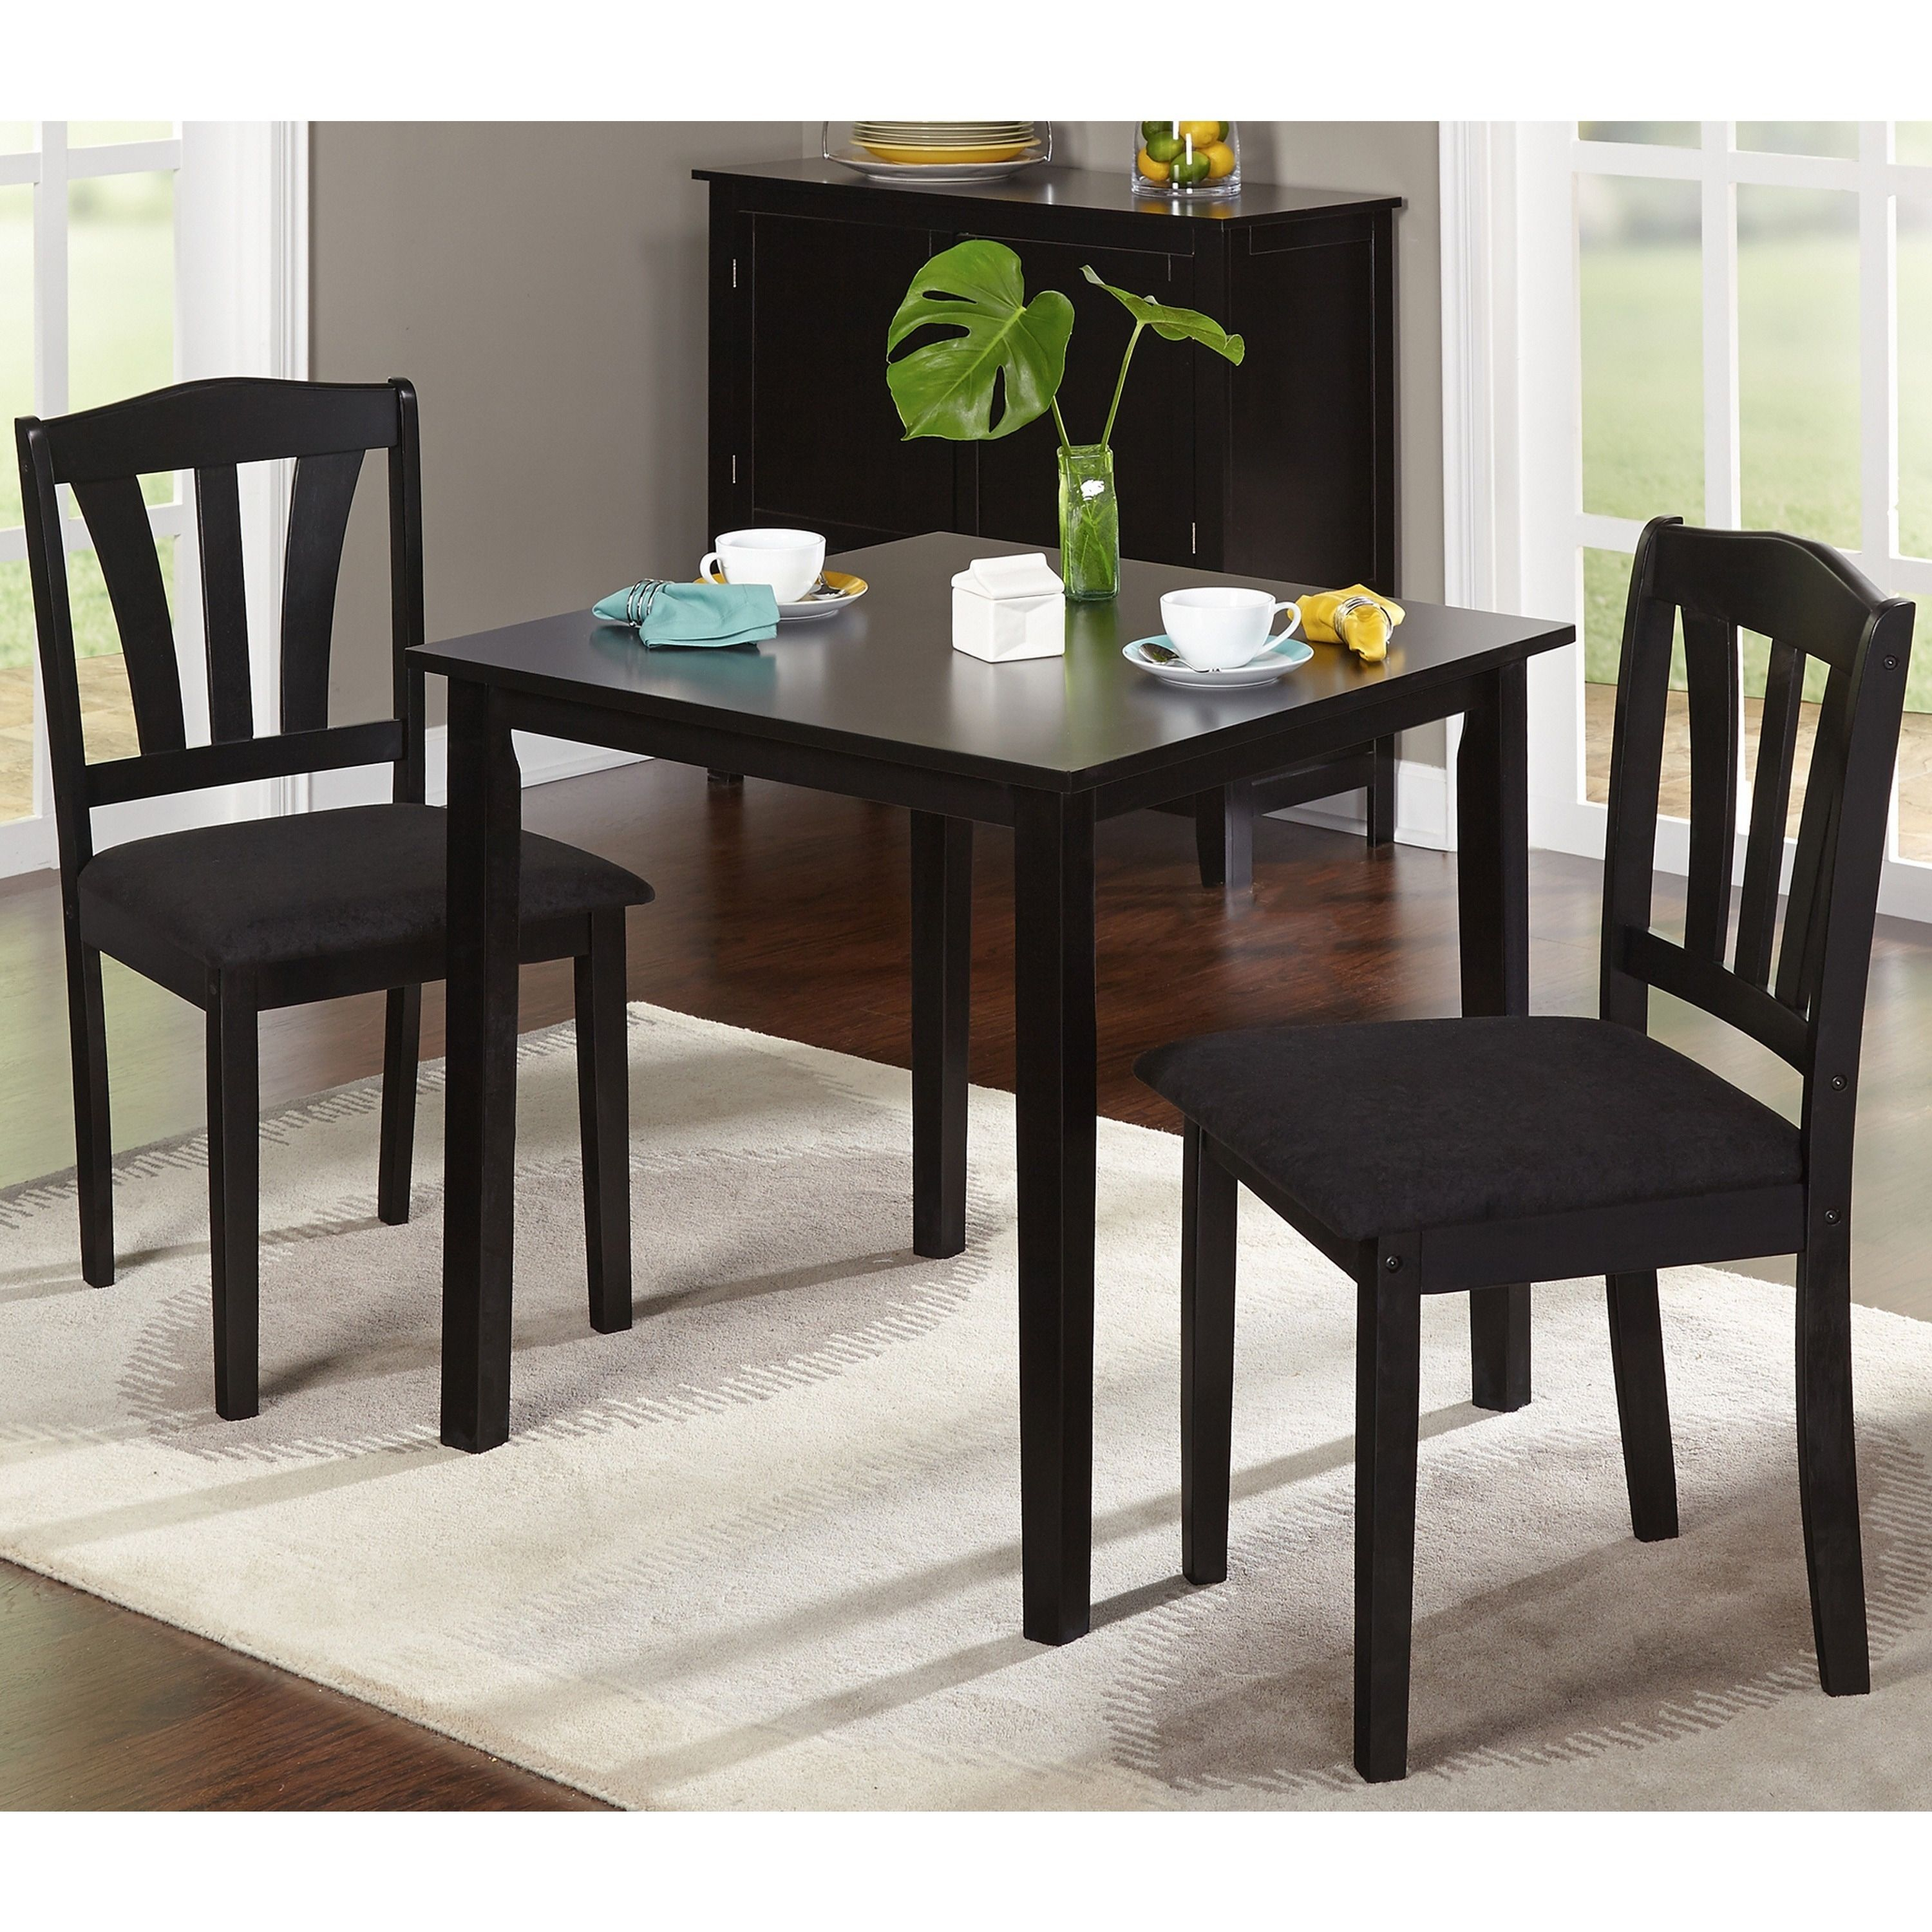 Porch & Den Third Ward Michigan 3 Piece Dining Set (Black Wood Intended For Widely Used Baillie 3 Piece Dining Sets (View 3 of 20)